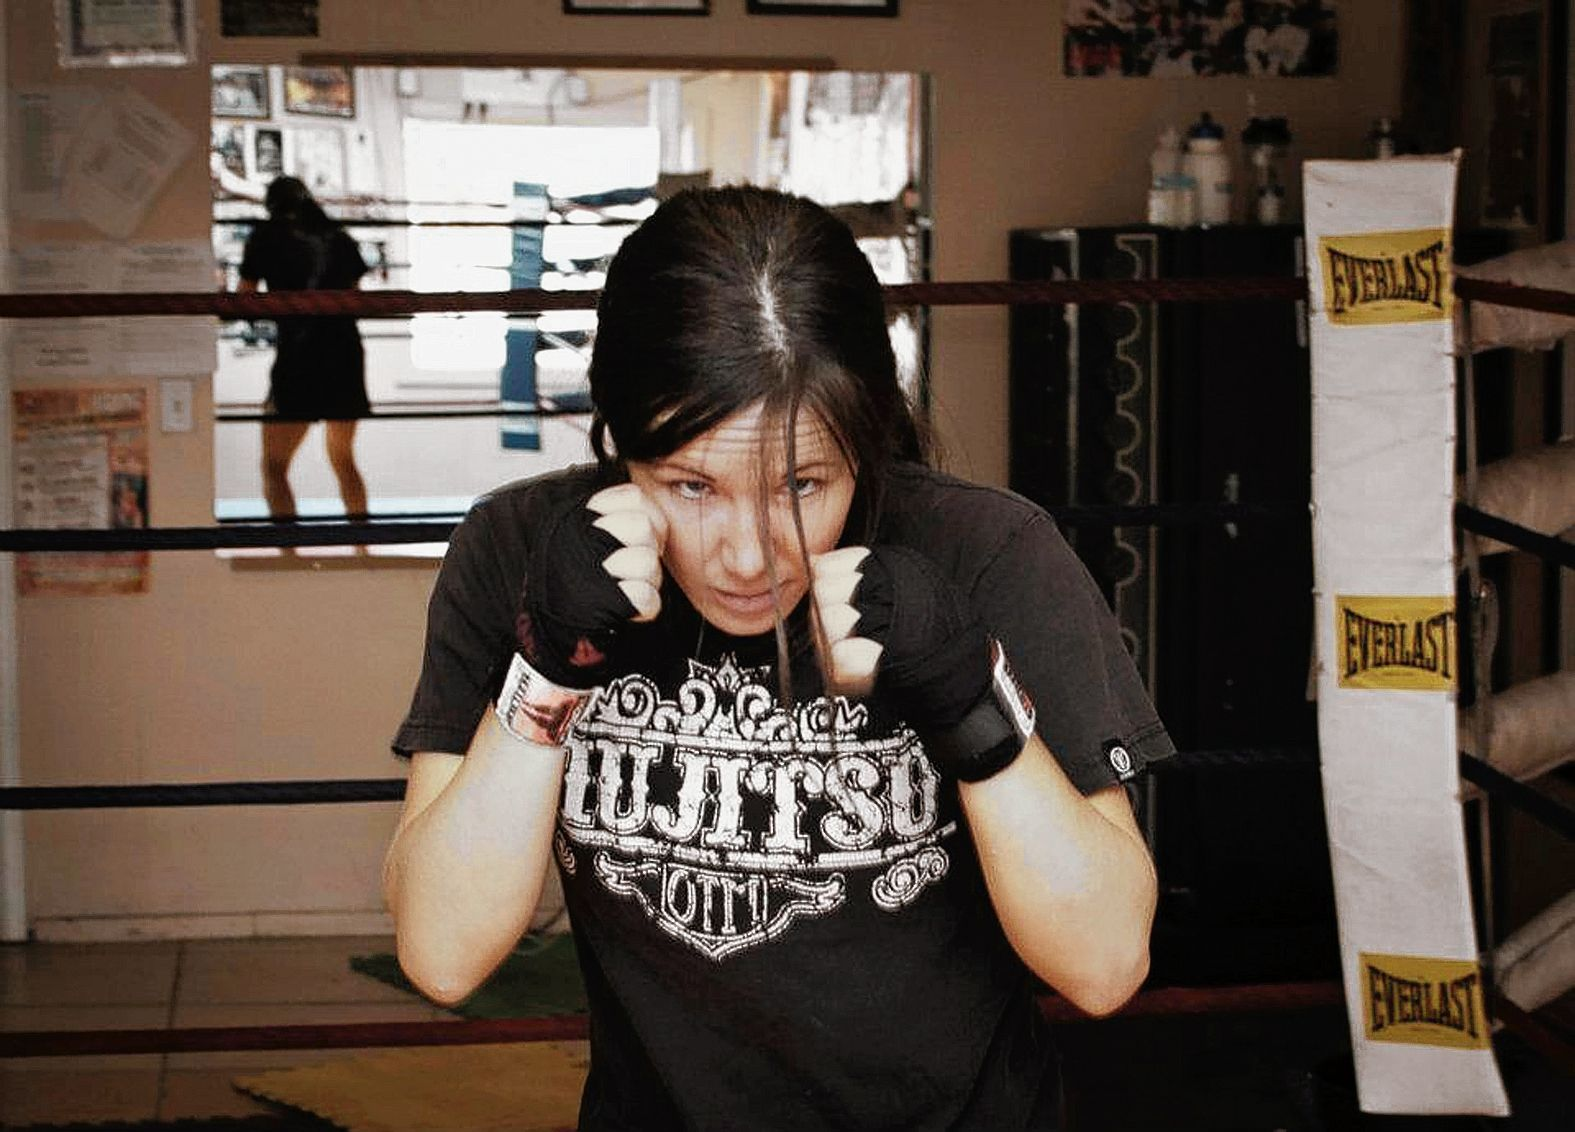 In My Local Paper Angela Magana Local Paper Women 115 Pounds